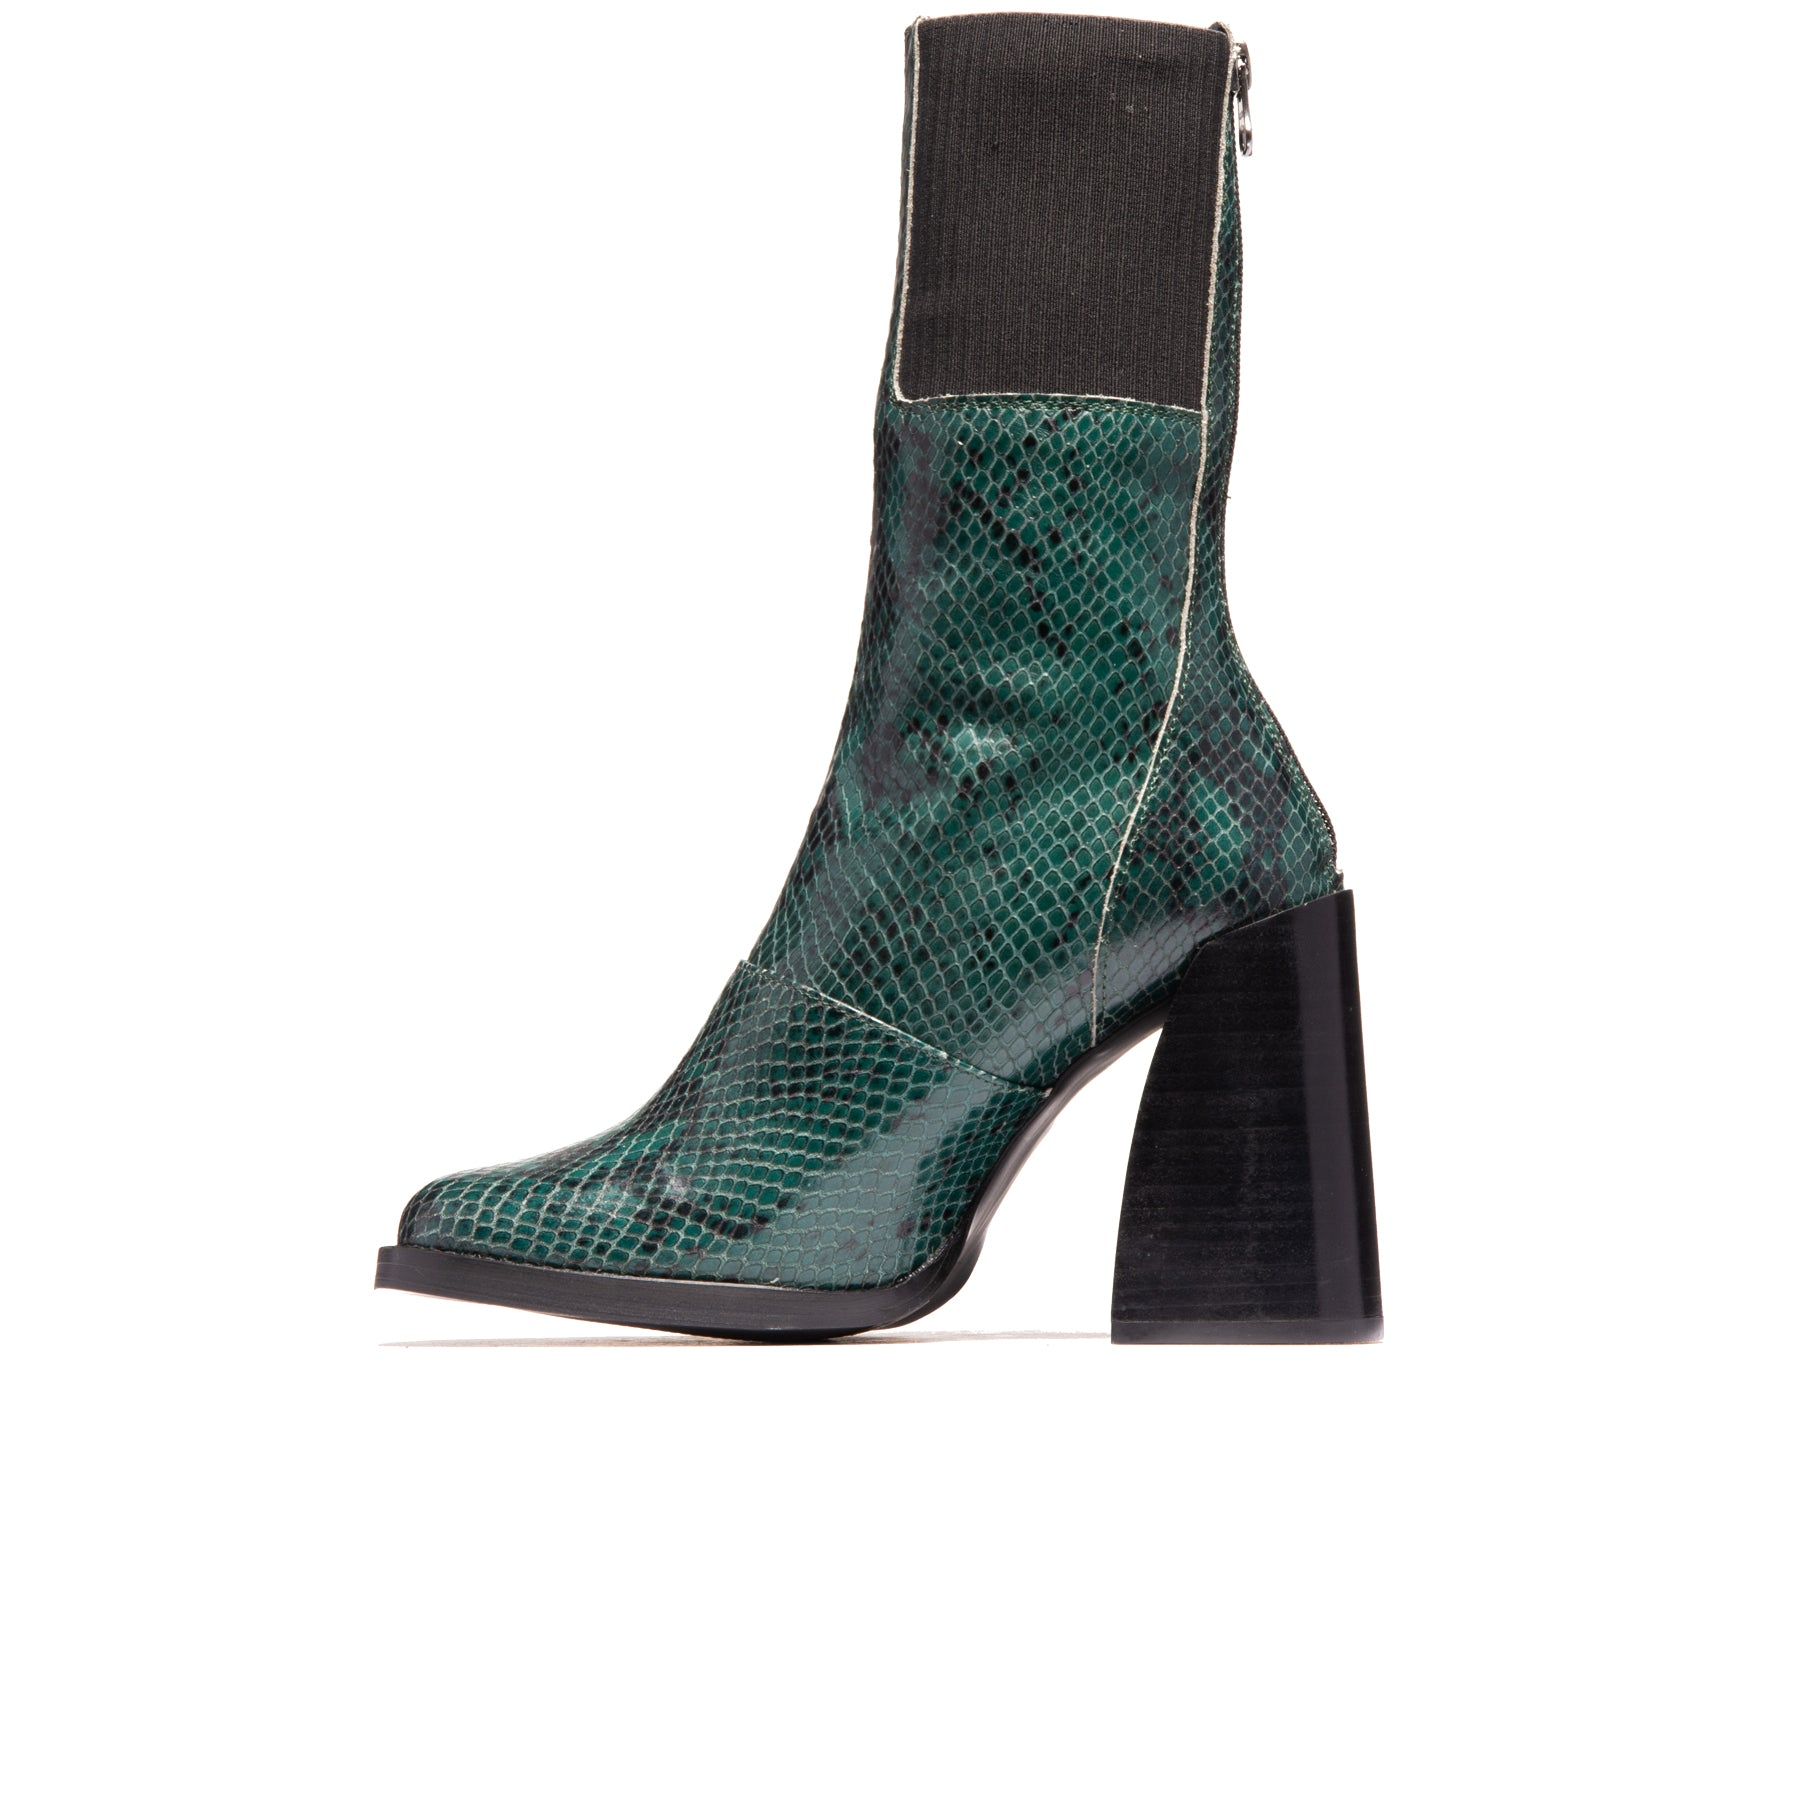 Elmers Dark Green Snake Leather